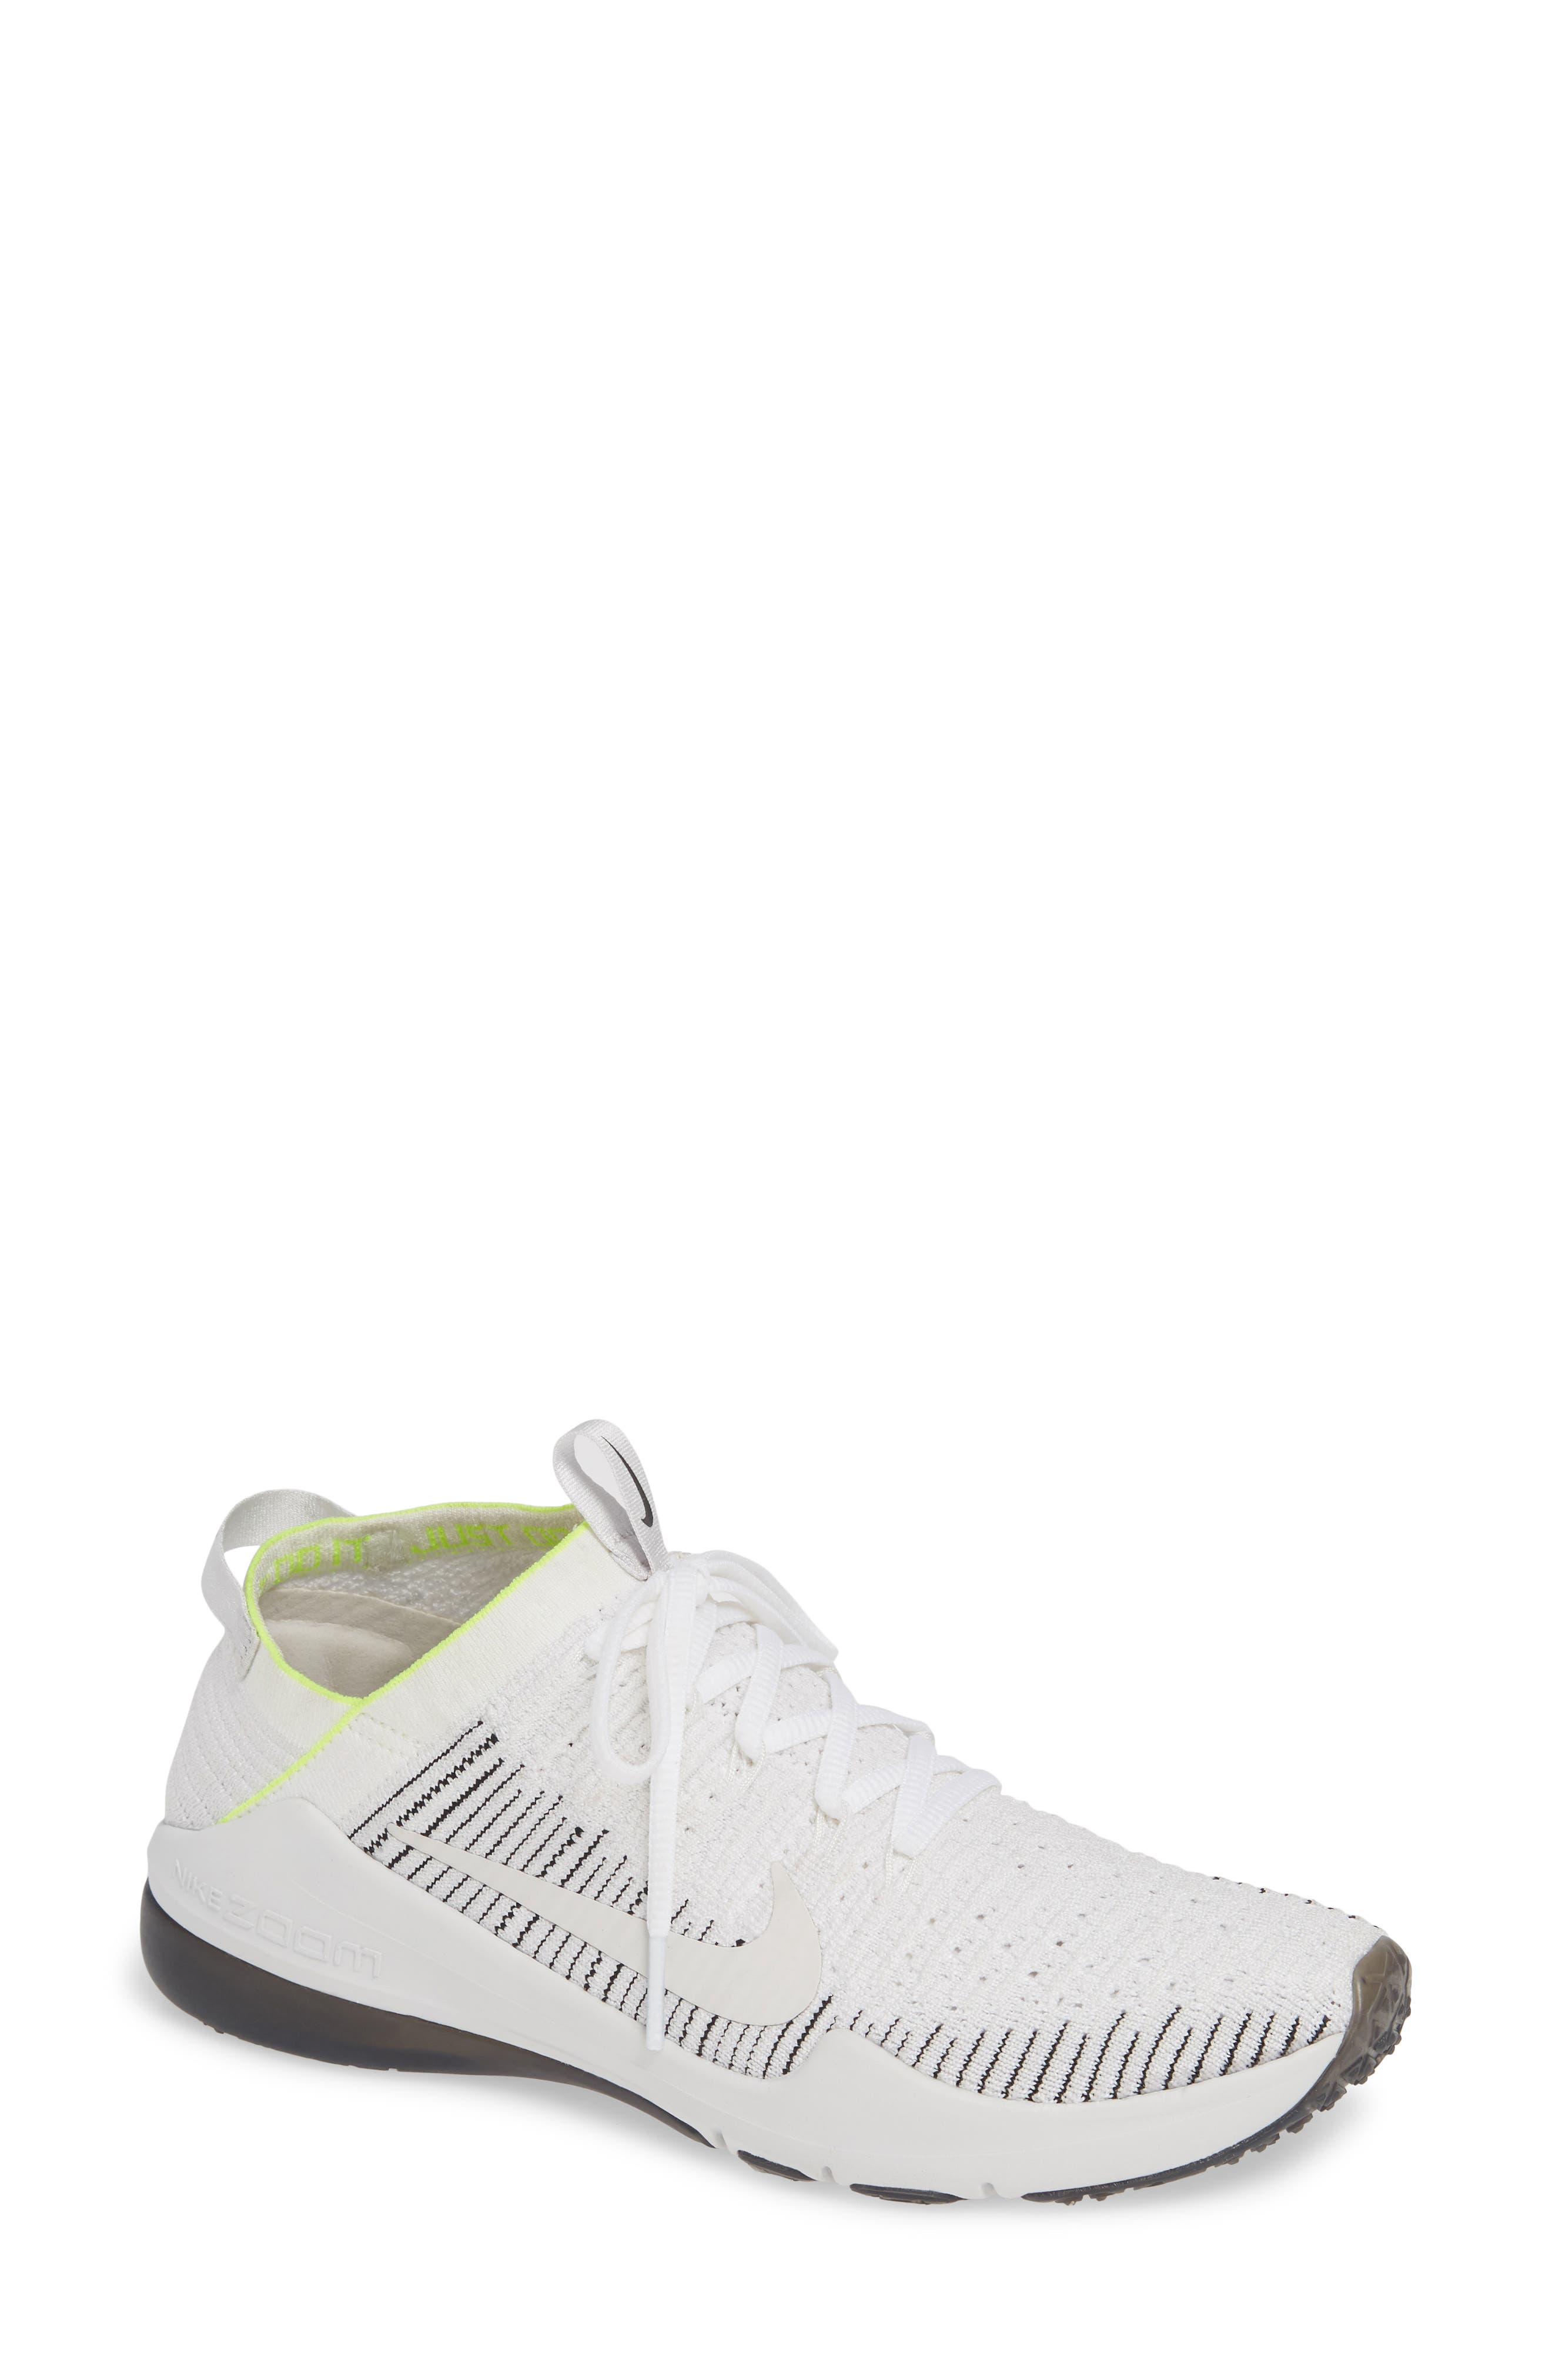 Air Zoom Fearless Flyknit 2 Training Sneaker,                         Main,                         color, WHITE/ PLATINUM TINT/ BLACK